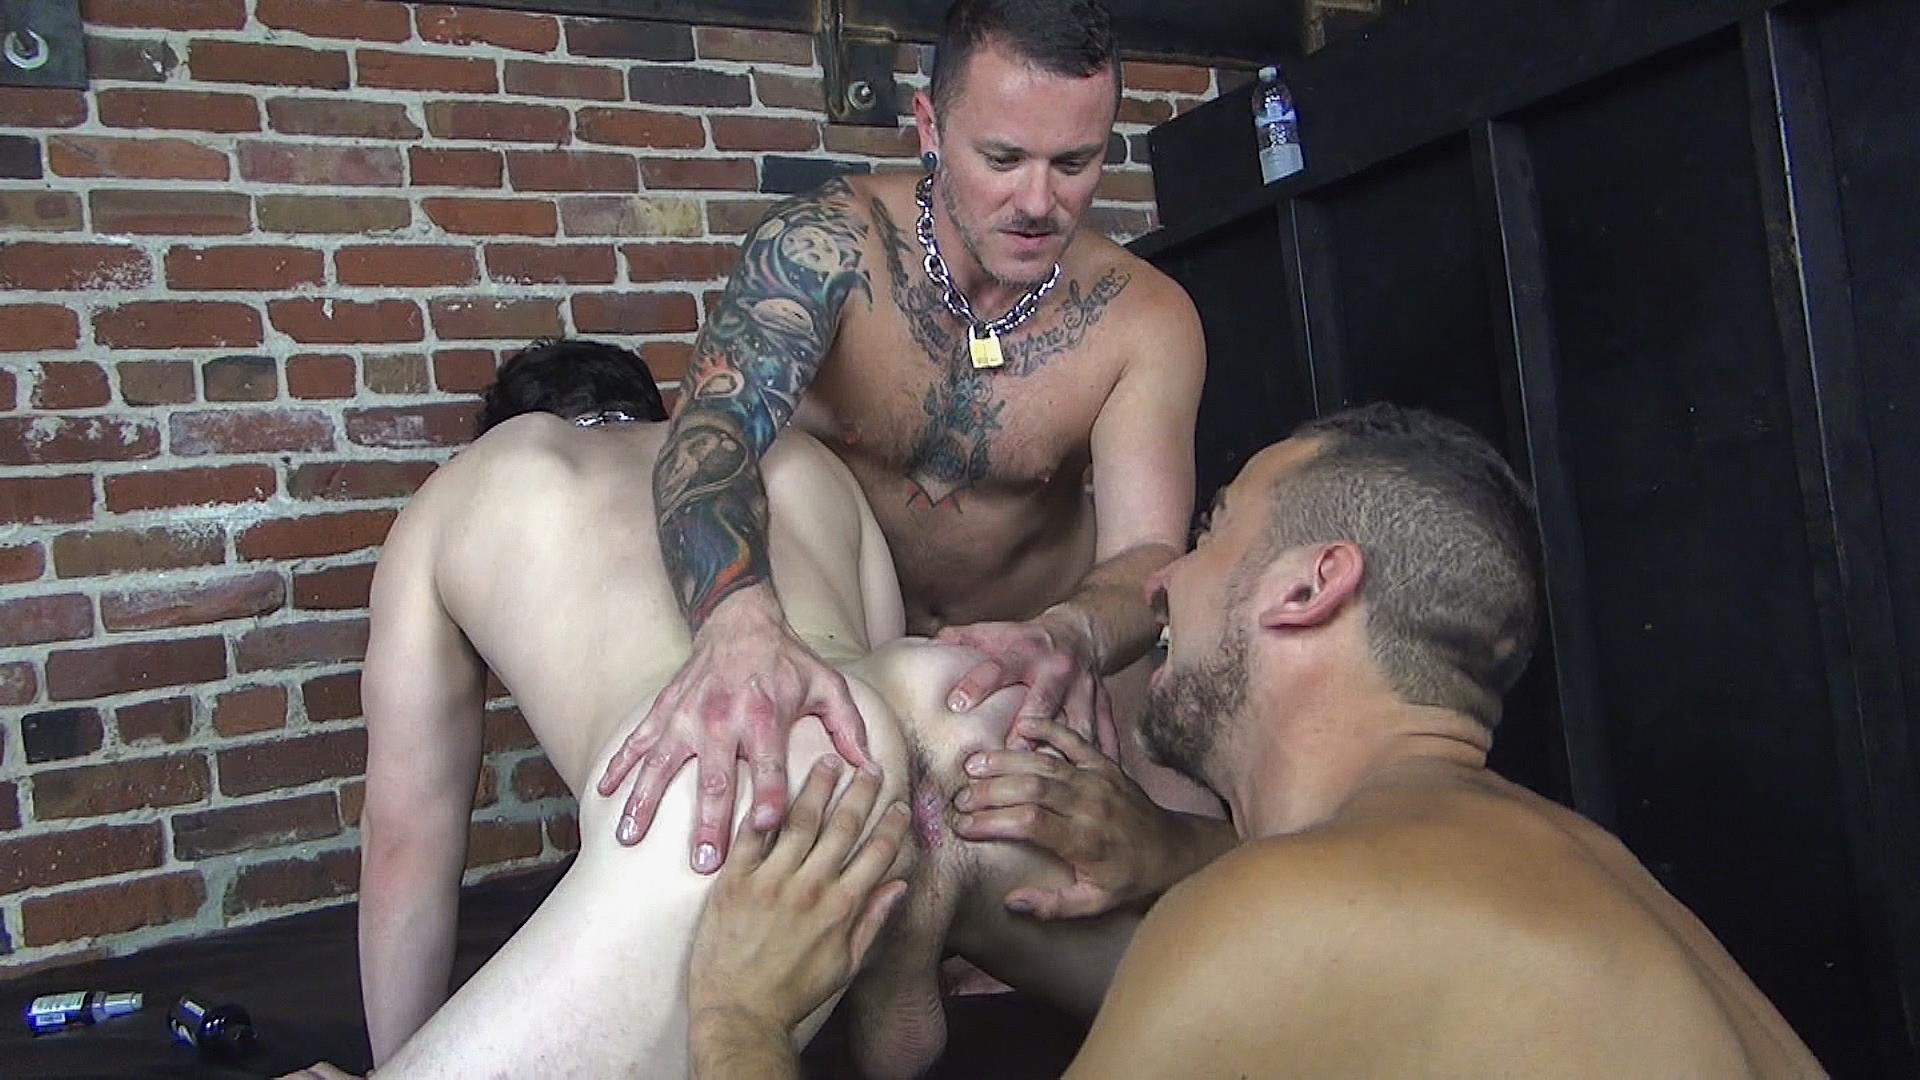 Raw-Fuck-Club-Max-Cameron-and-Jackson-Fillmore-and-Leon-Fox-Bareback-Double-Penetration-Amateur-Gay-Porn-01 Getting Double Penetrated Bareback By A Big Uncut Cock